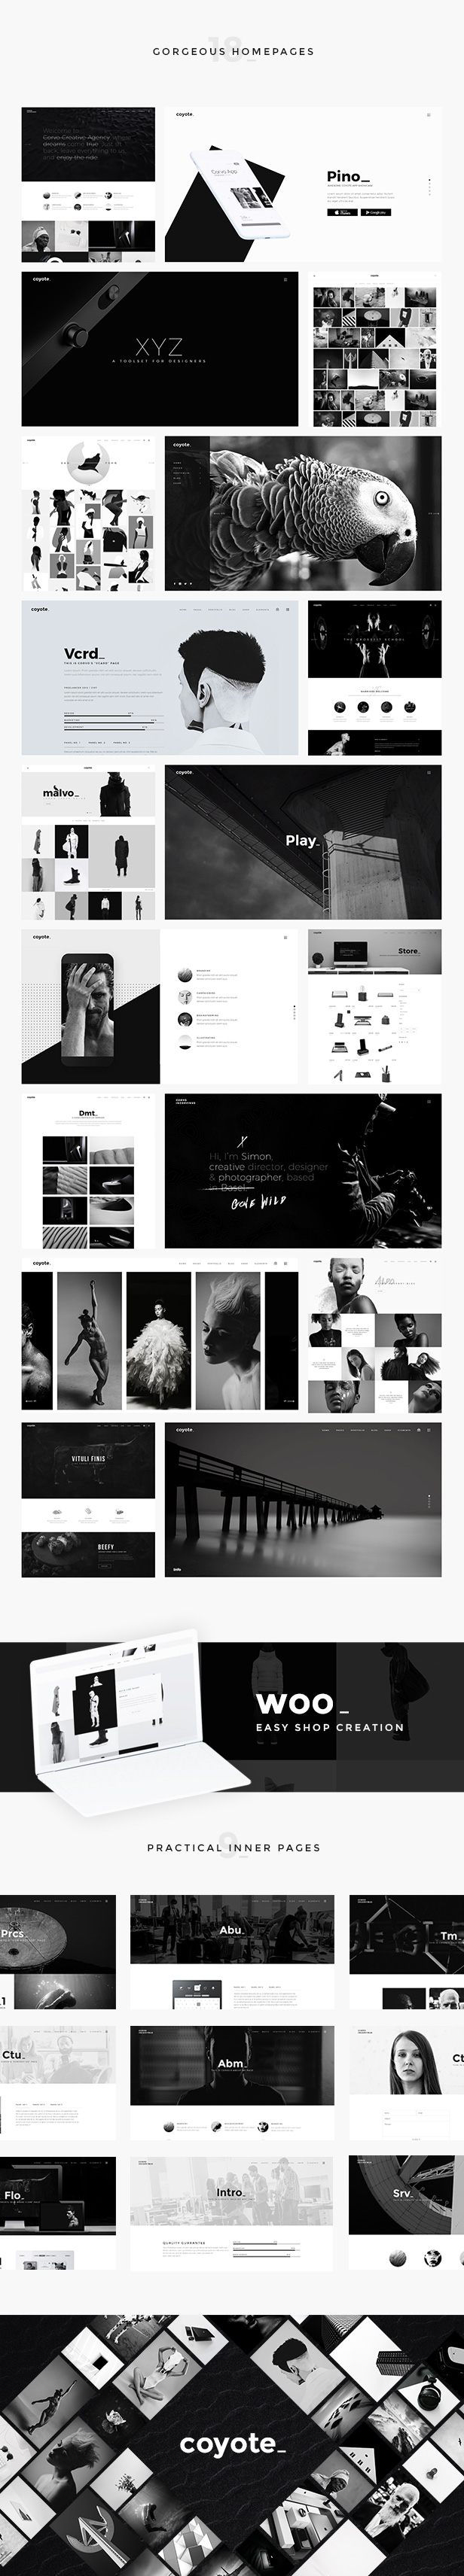 WordPress theme Coyote - A Refined, Powerful Multipurpose Theme (Creative)